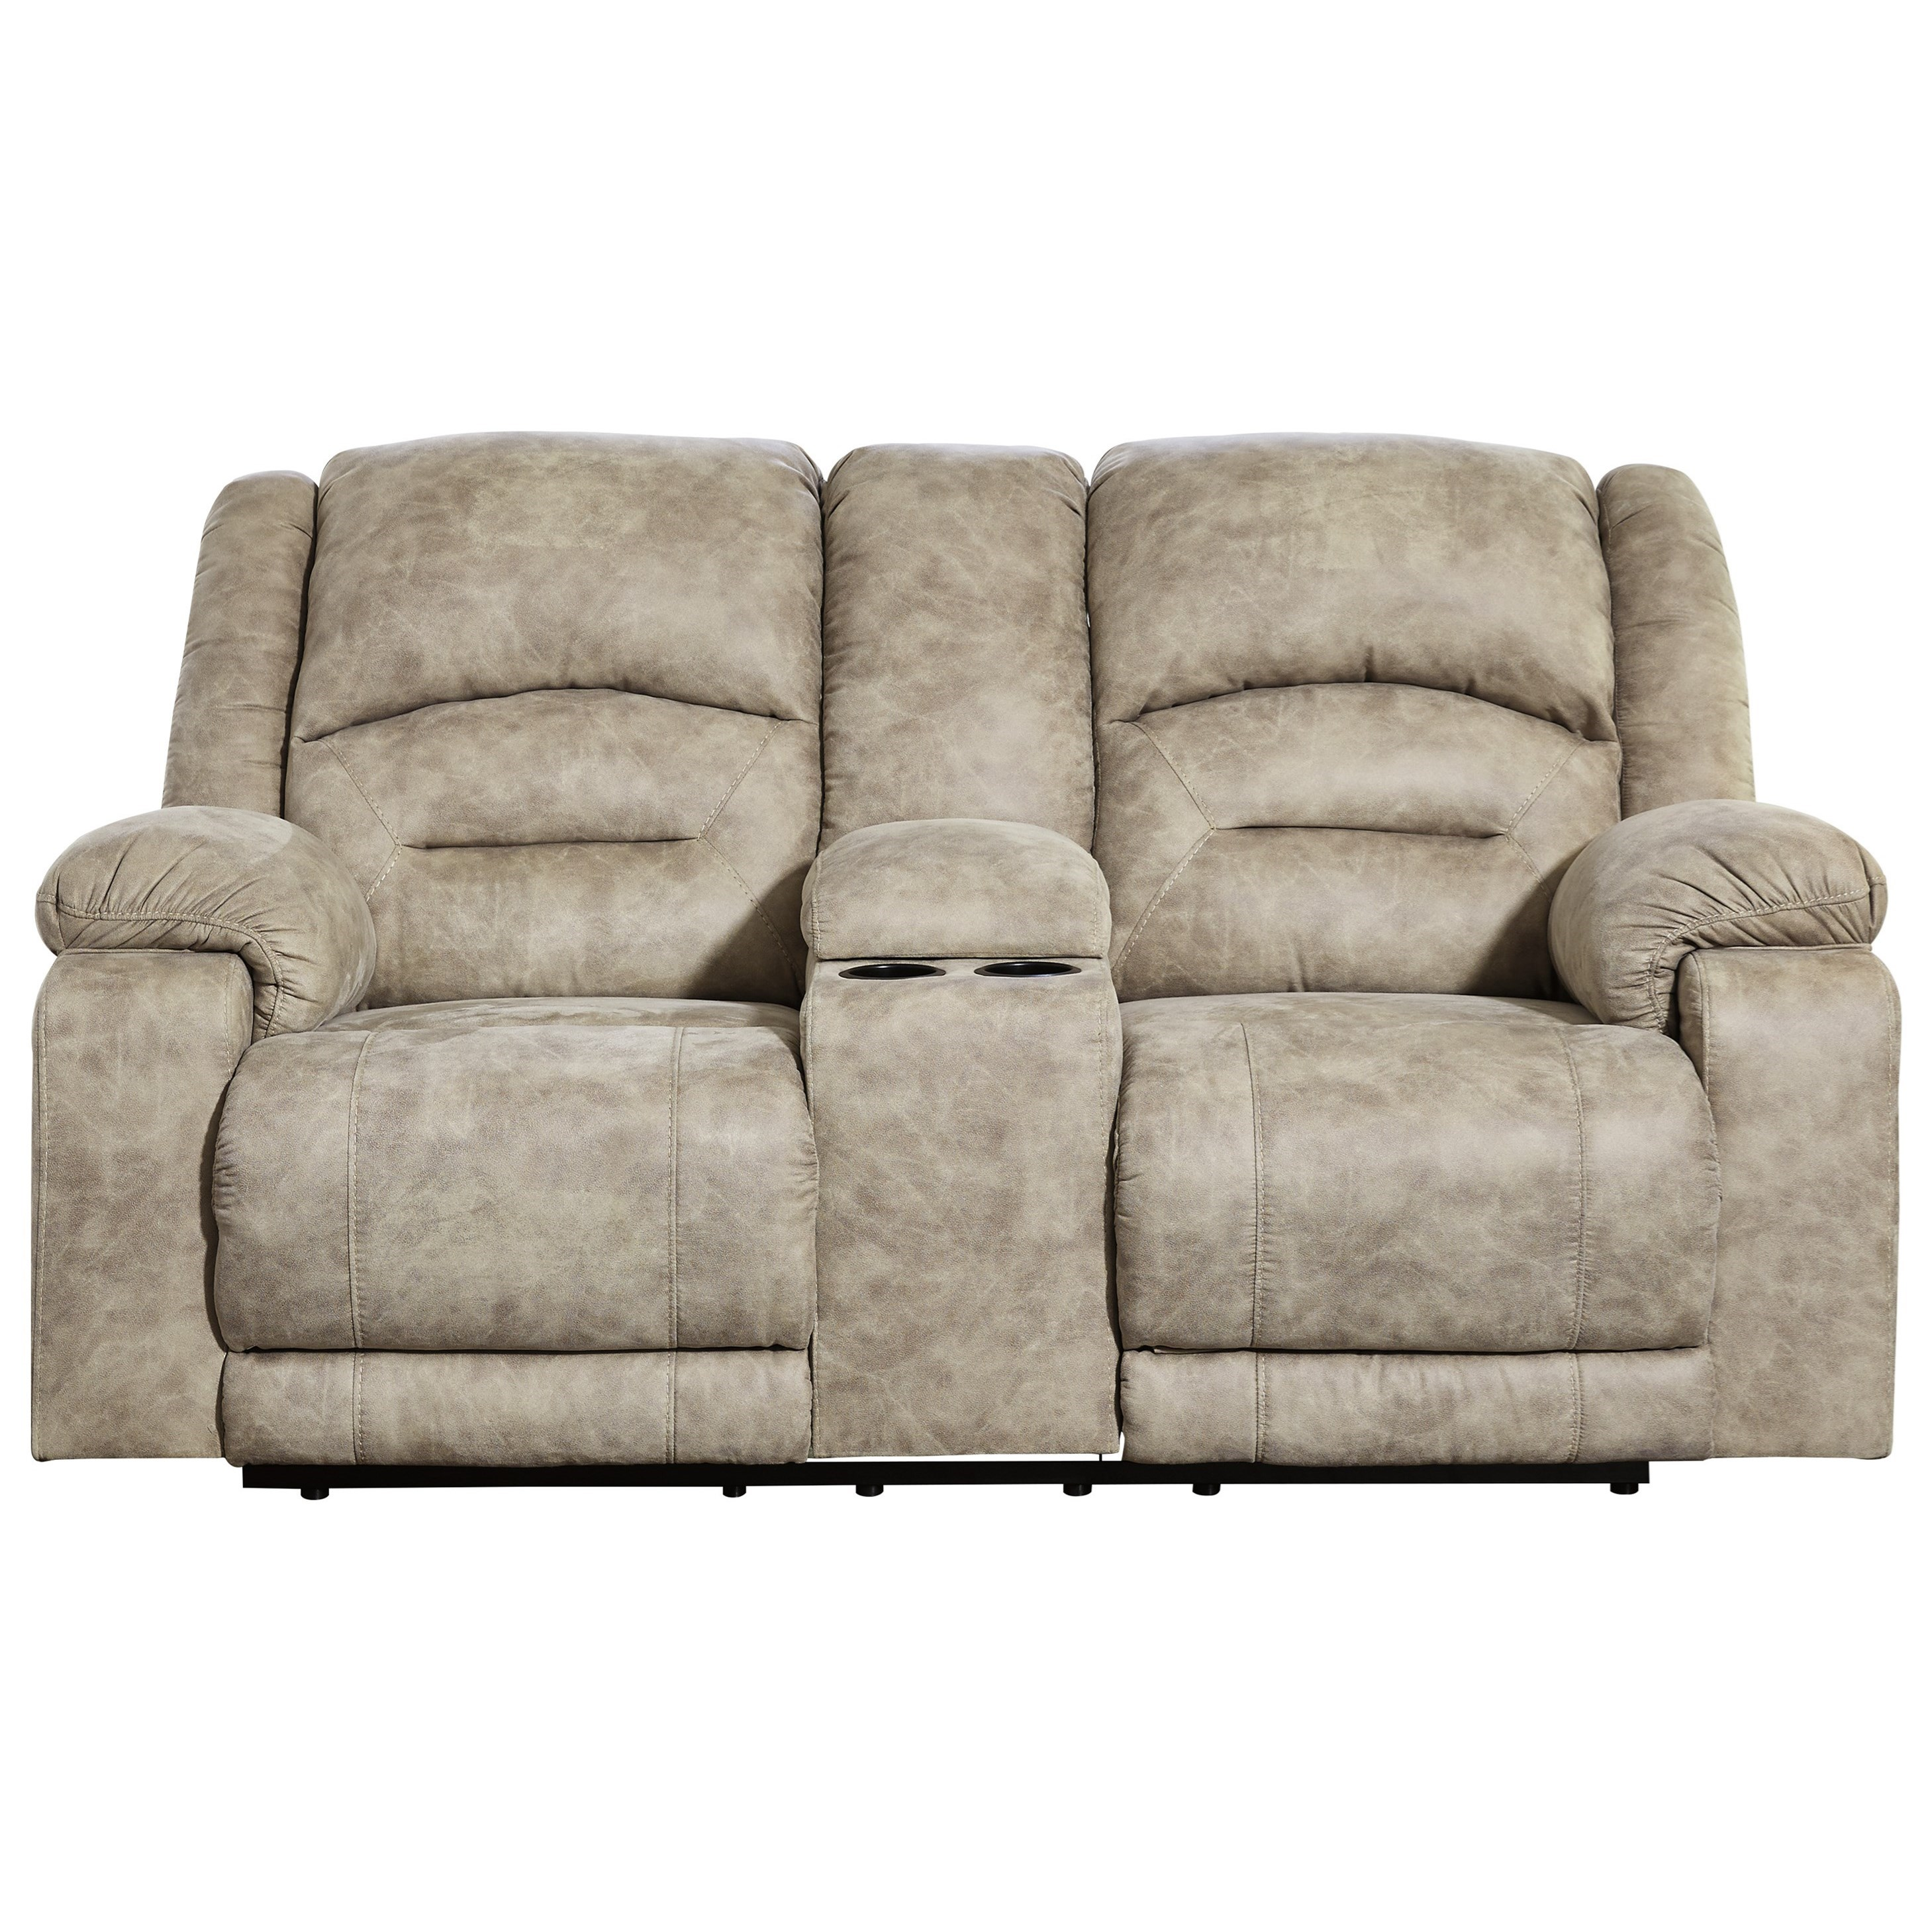 Benchcraft McGinty Power Reclining Loveseat - Item Number: 5410118